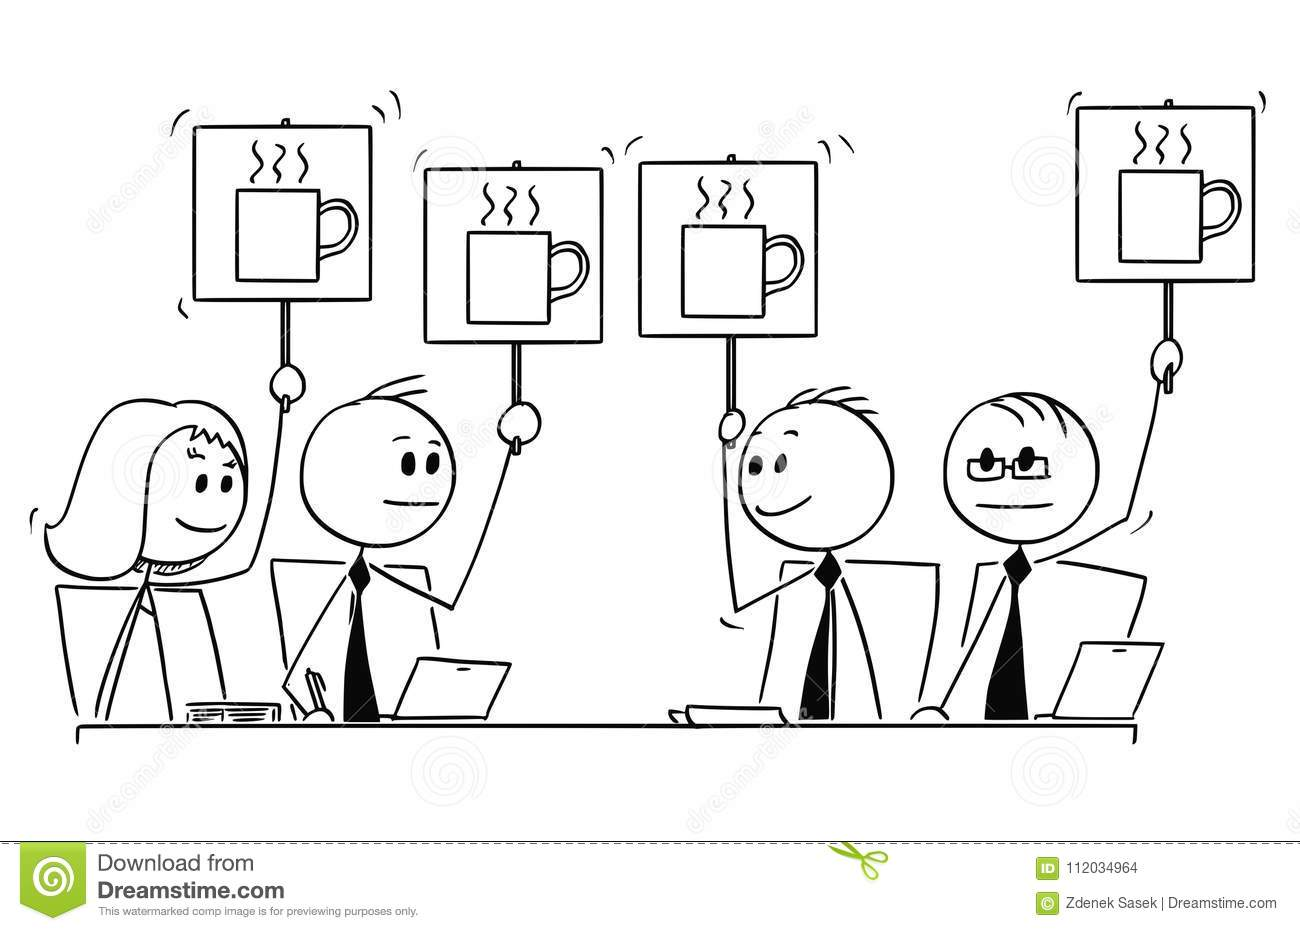 Cartoon Of Business Team Or People Meeting Voting For